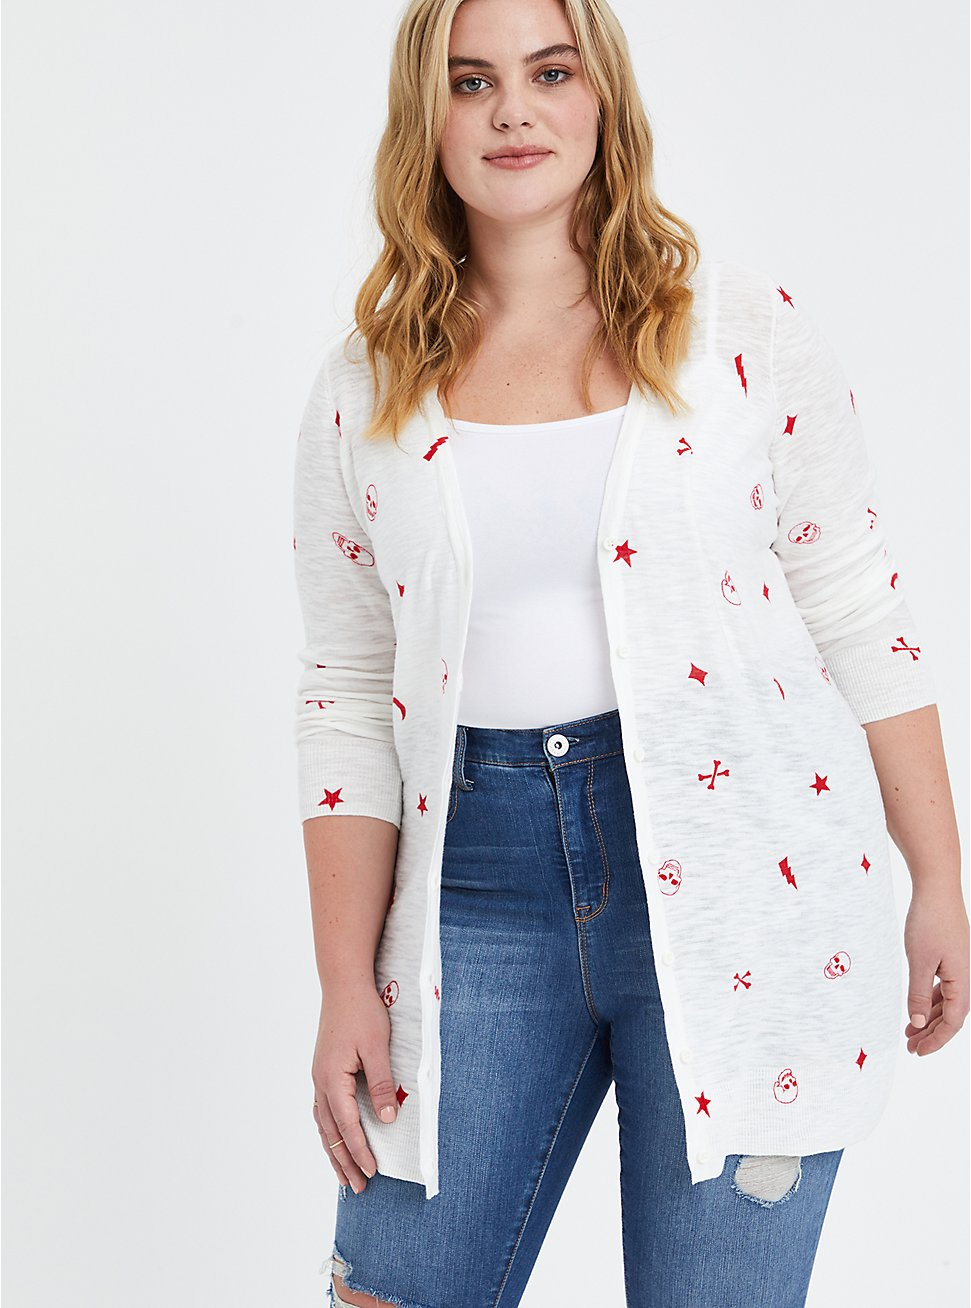 Button Front Cardigan Sweater - Mystic Icons White, MULTI, hi-res